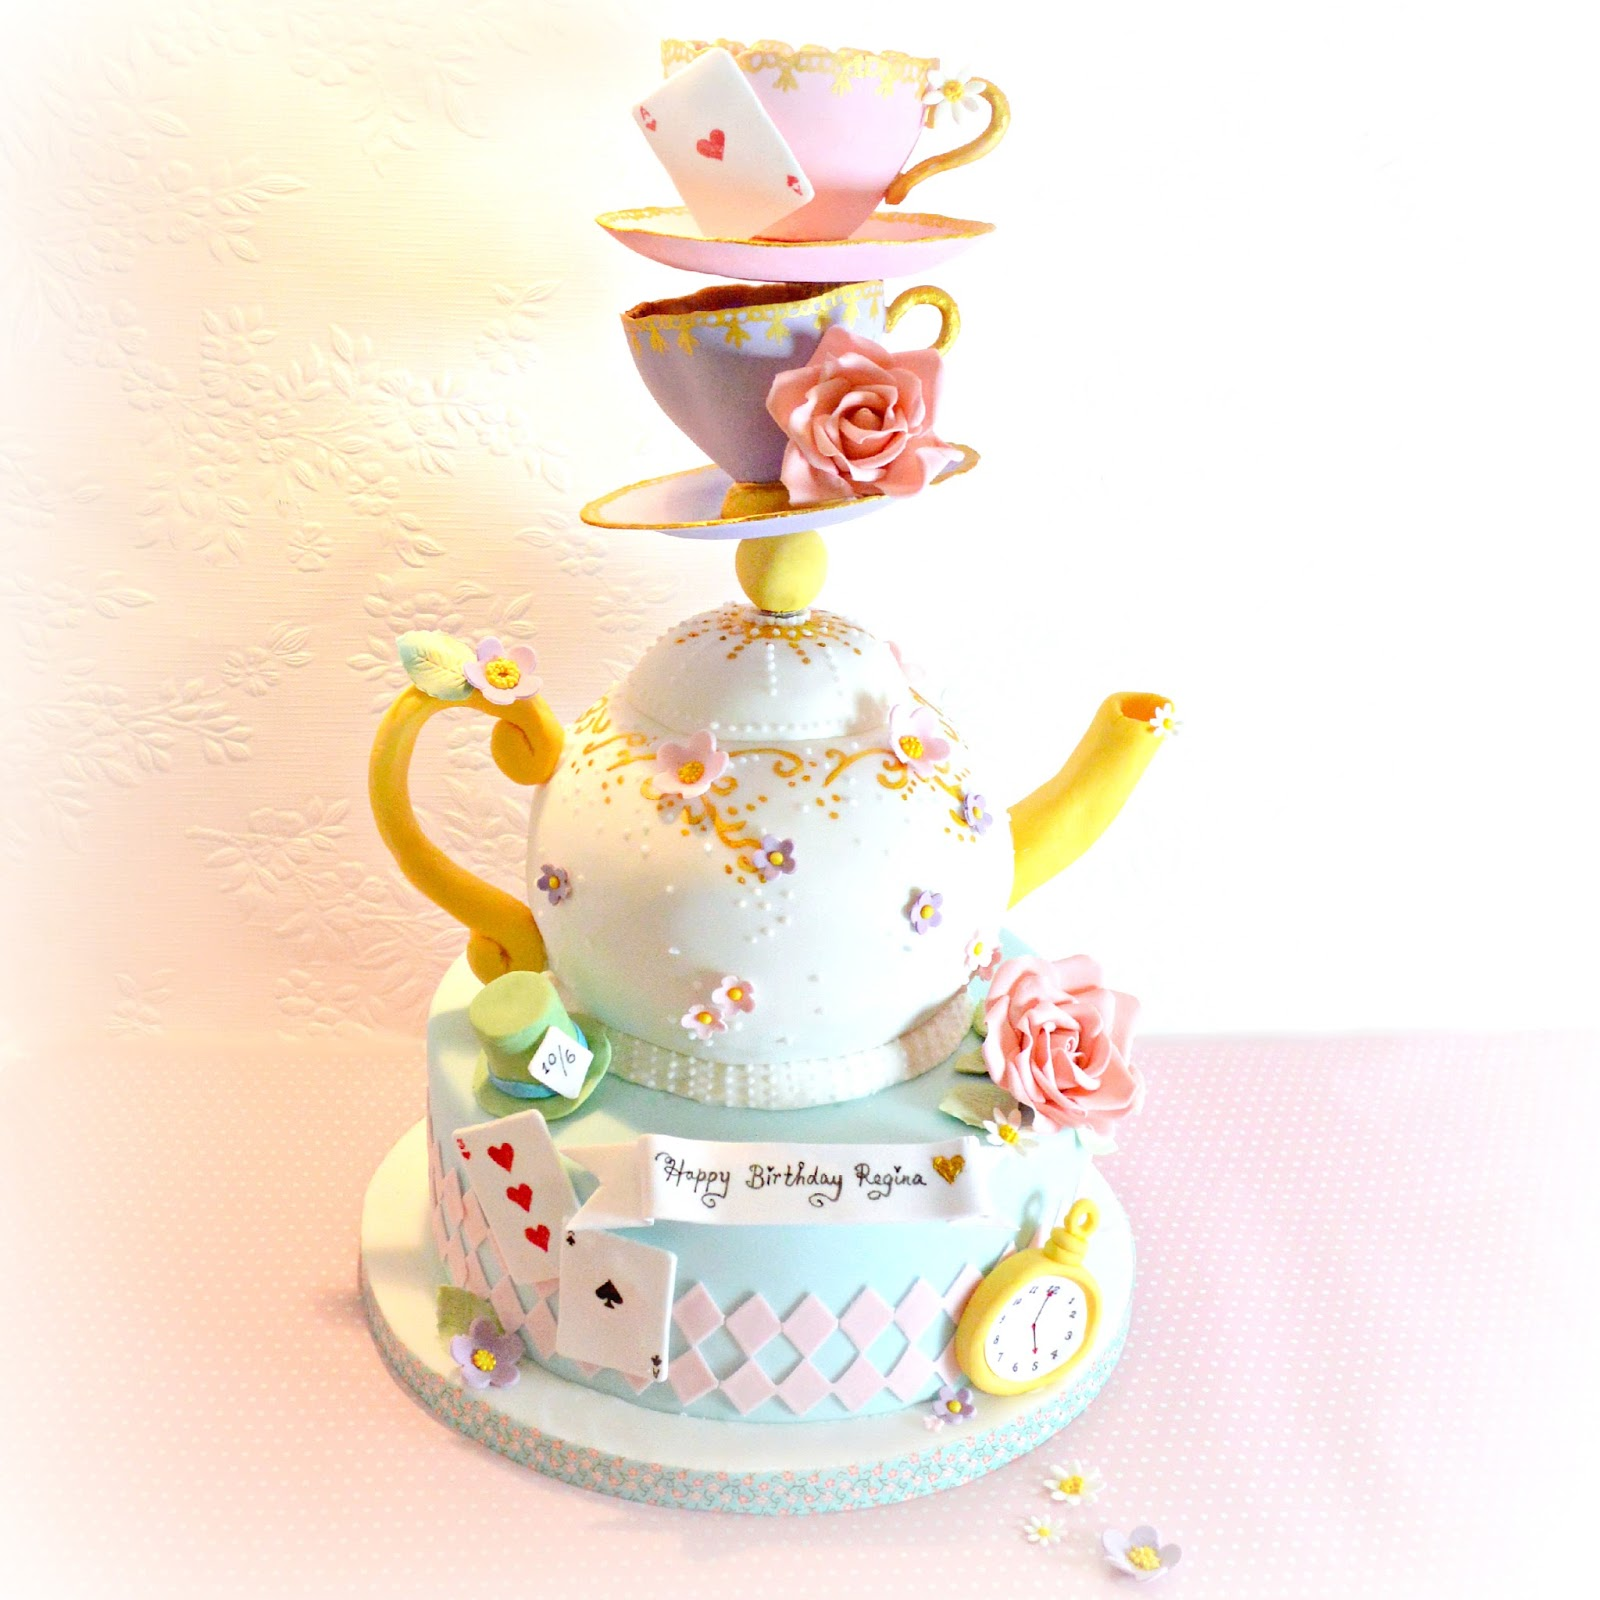 Cherie Kelly's Topsy Turvy Mad Hatter Teapot and Teacups Cake